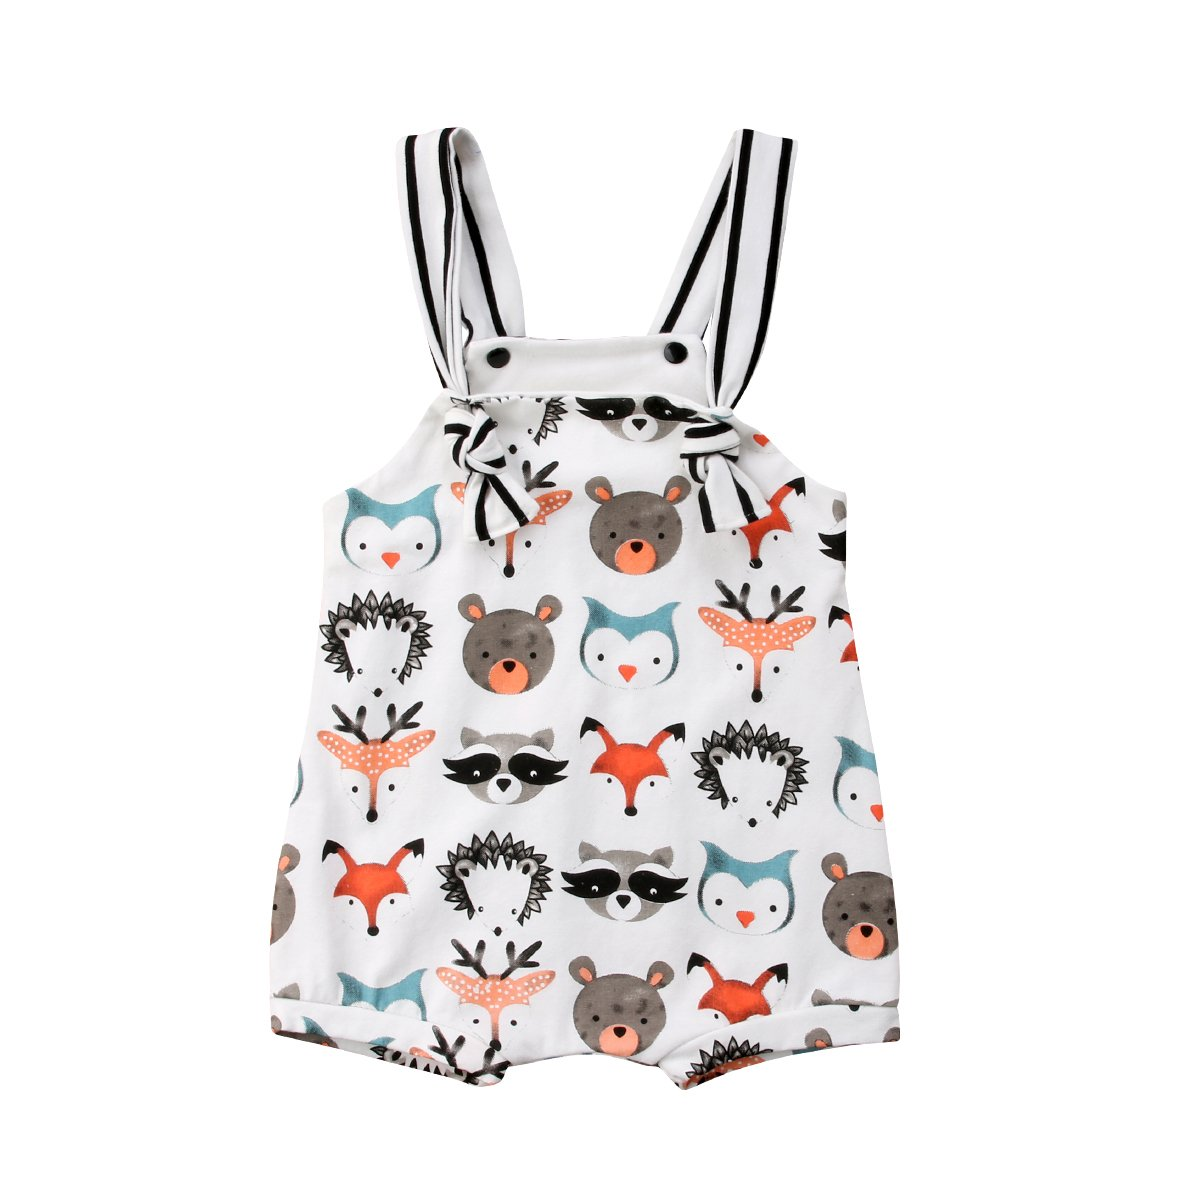 Fansxing Infant Baby Boy Girl Sleeveless Animal Print Romper Jumpsuit One-Piece Outfit